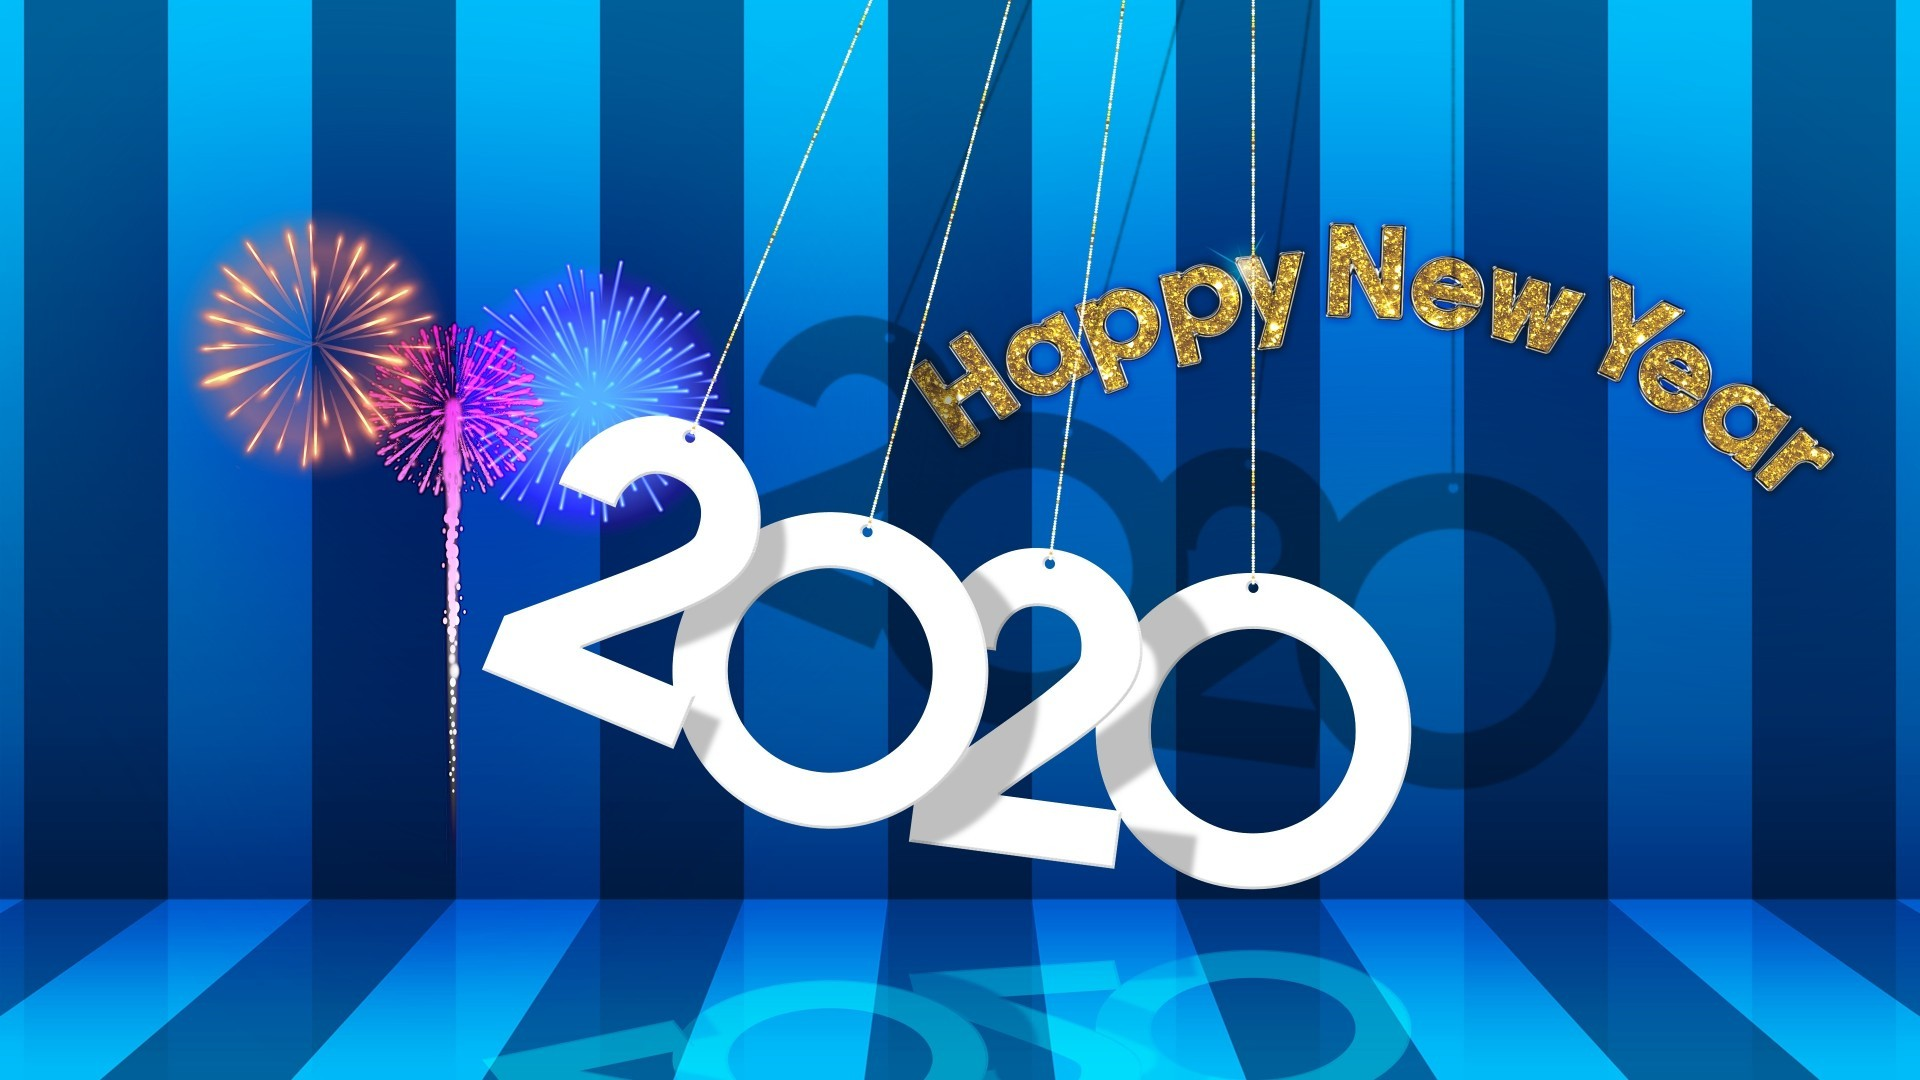 Download 1920x1080 Happy New Year 2020 Design Wallpapers for 1920x1080